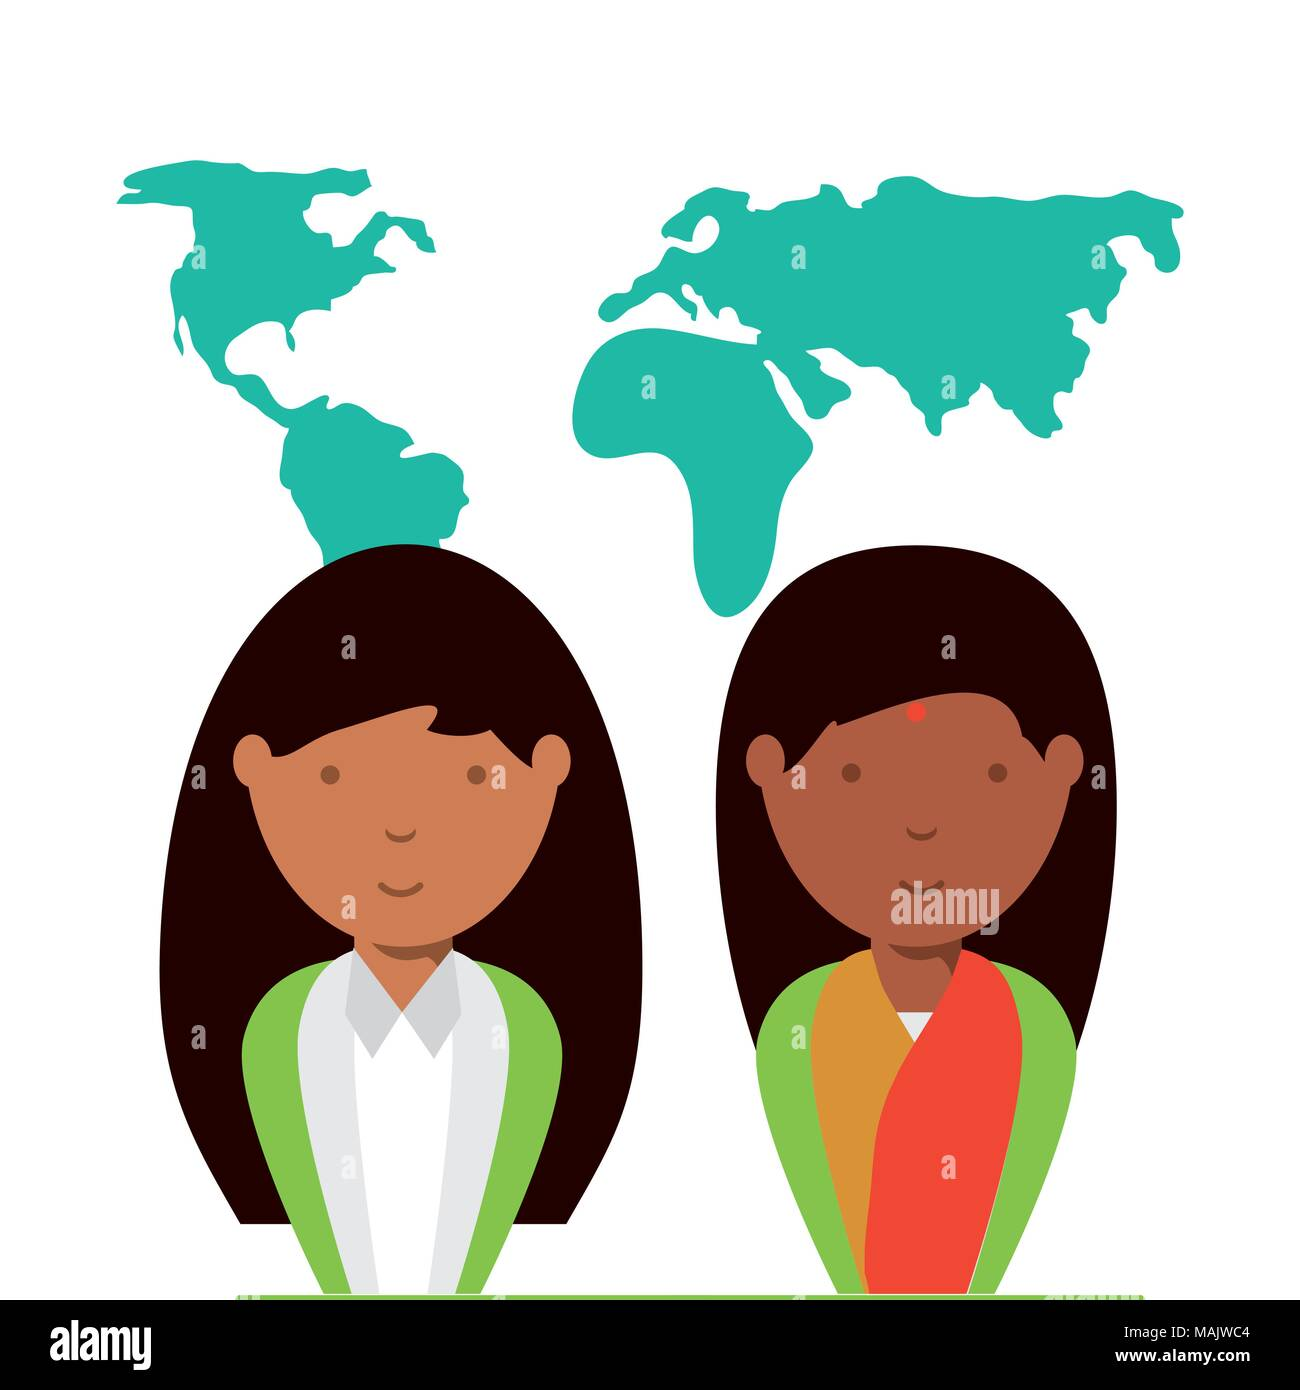 cartoon hindu women over world map and white background colorful design vector illustration